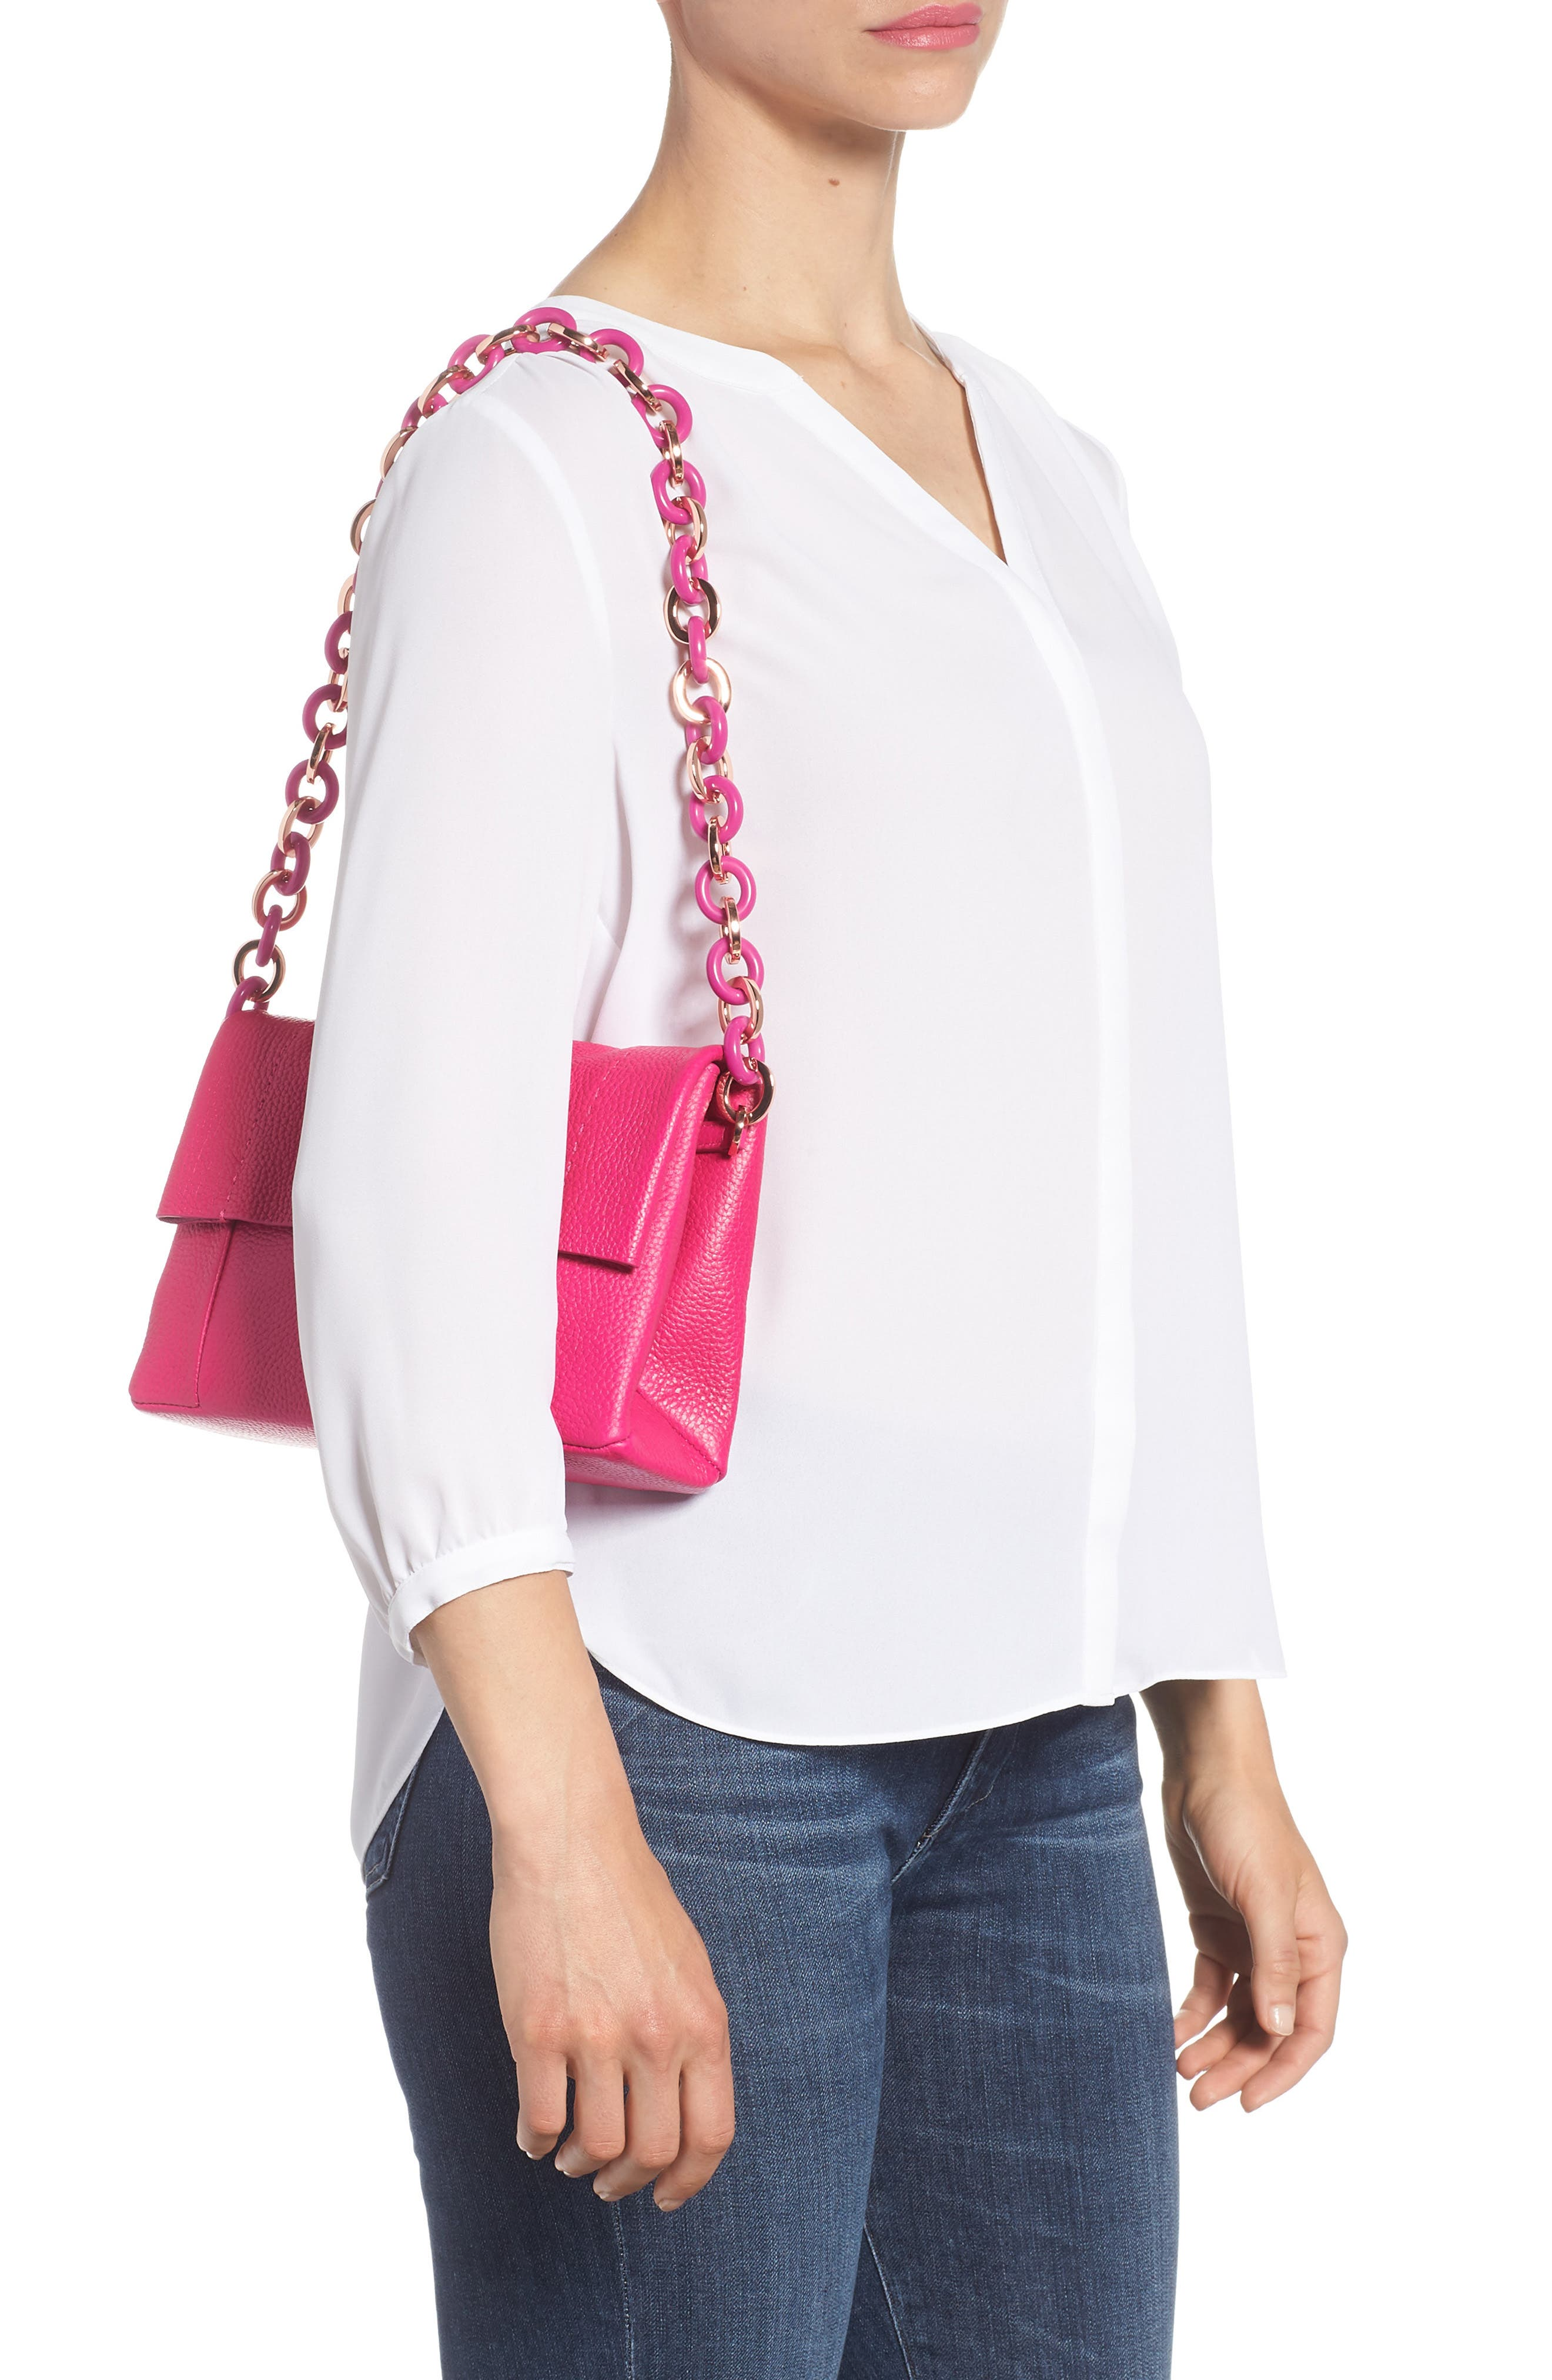 Ipomoea Leather Shoulder Bag,                             Alternate thumbnail 2, color,                             FUCHSIA